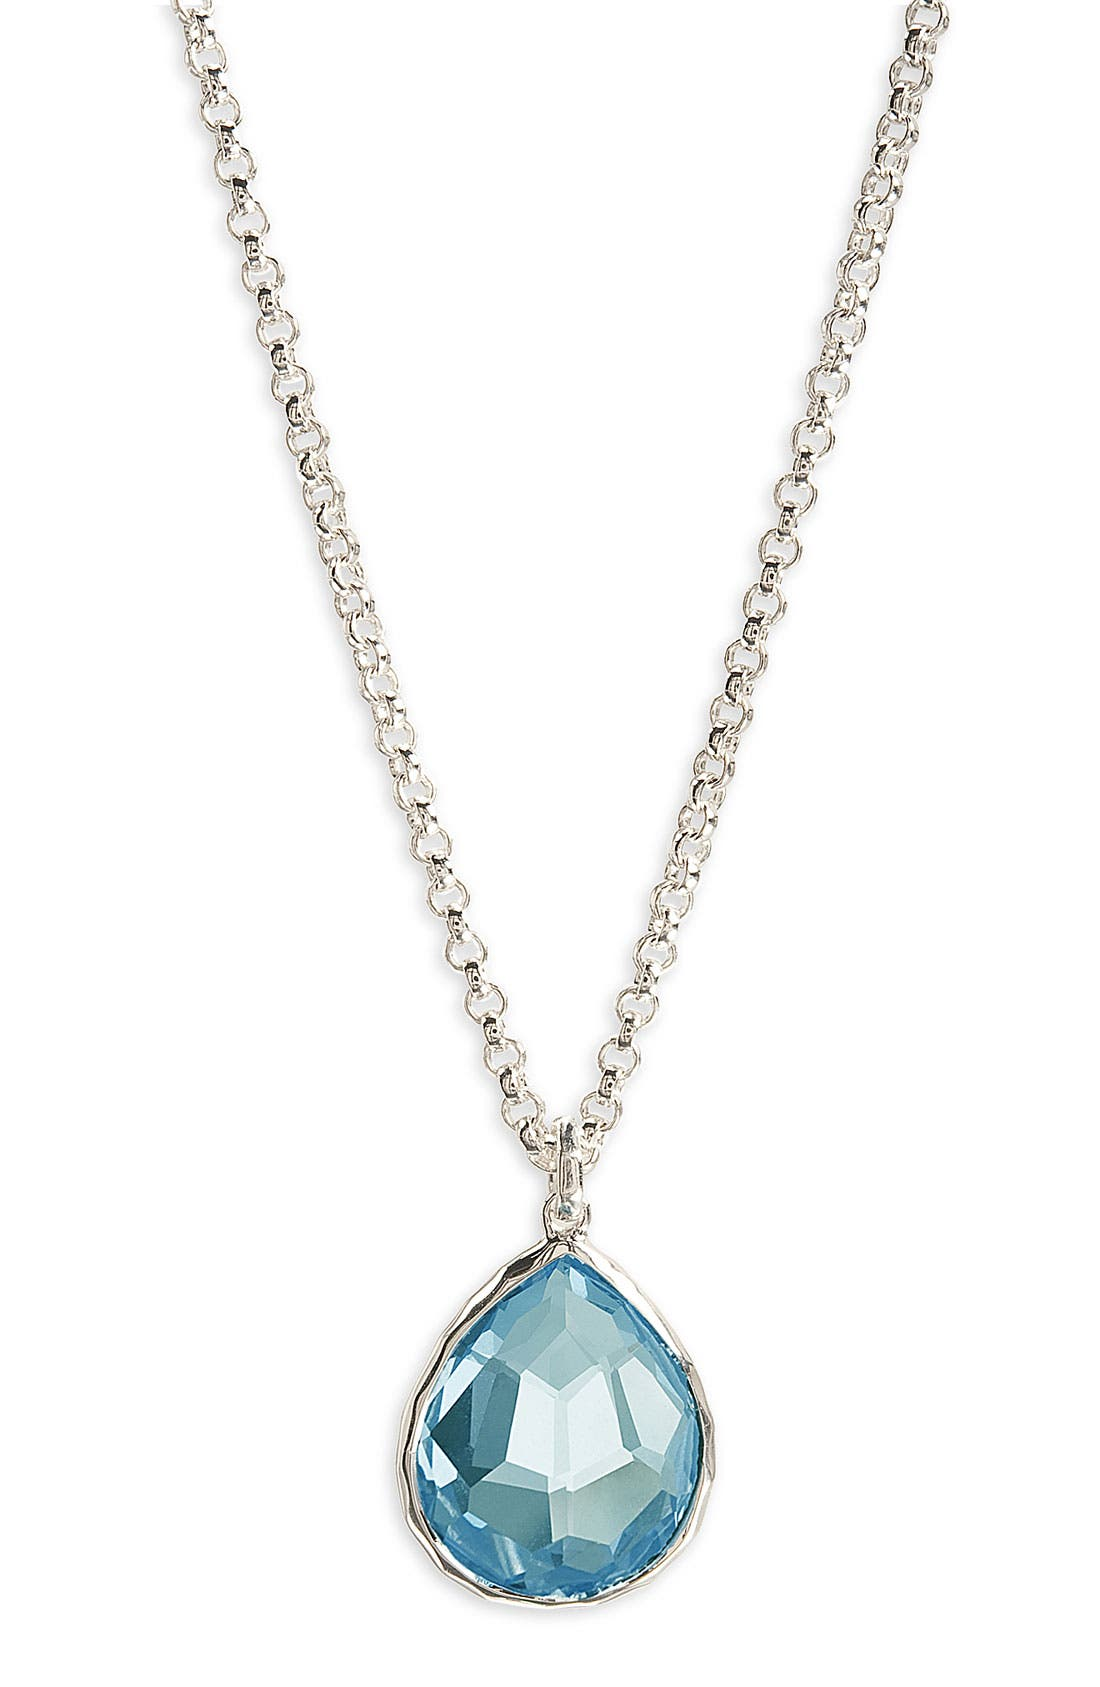 'Wonderland' Mini Teardrop Pendant Necklace,                             Main thumbnail 1, color,                             STERLING SILVER- BLUE TOPAZ